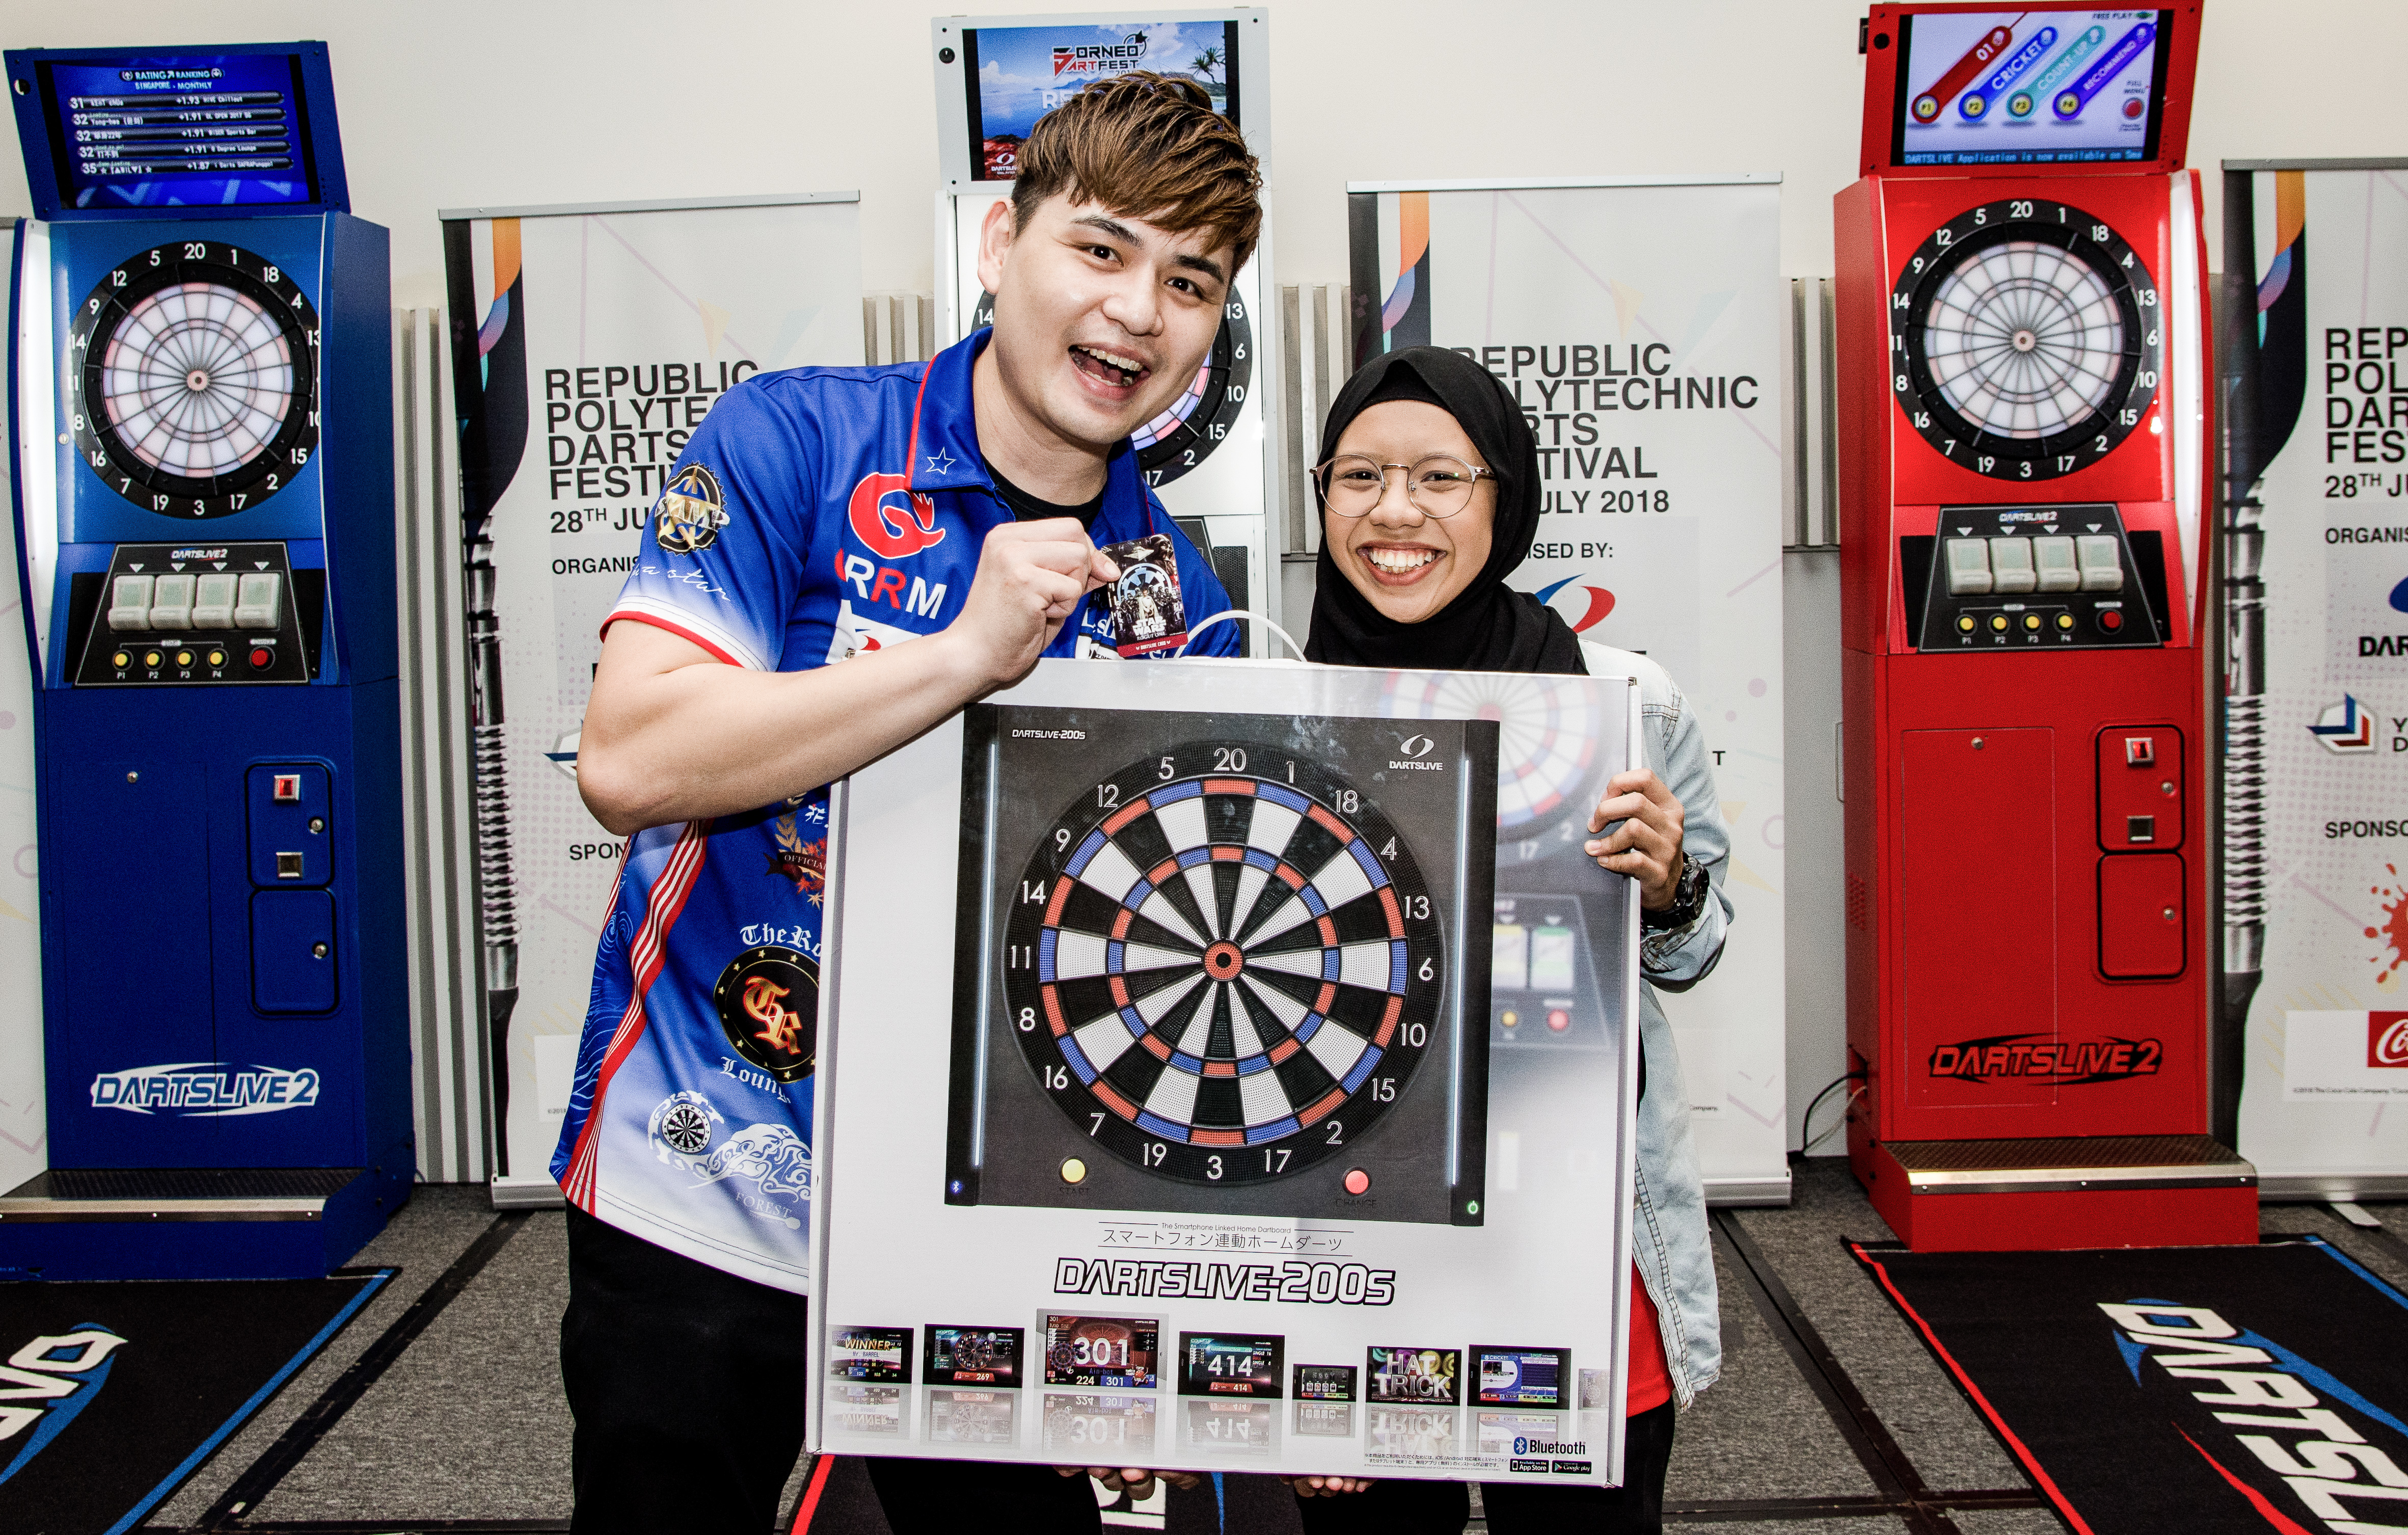 Youth Darts Festival Eventg